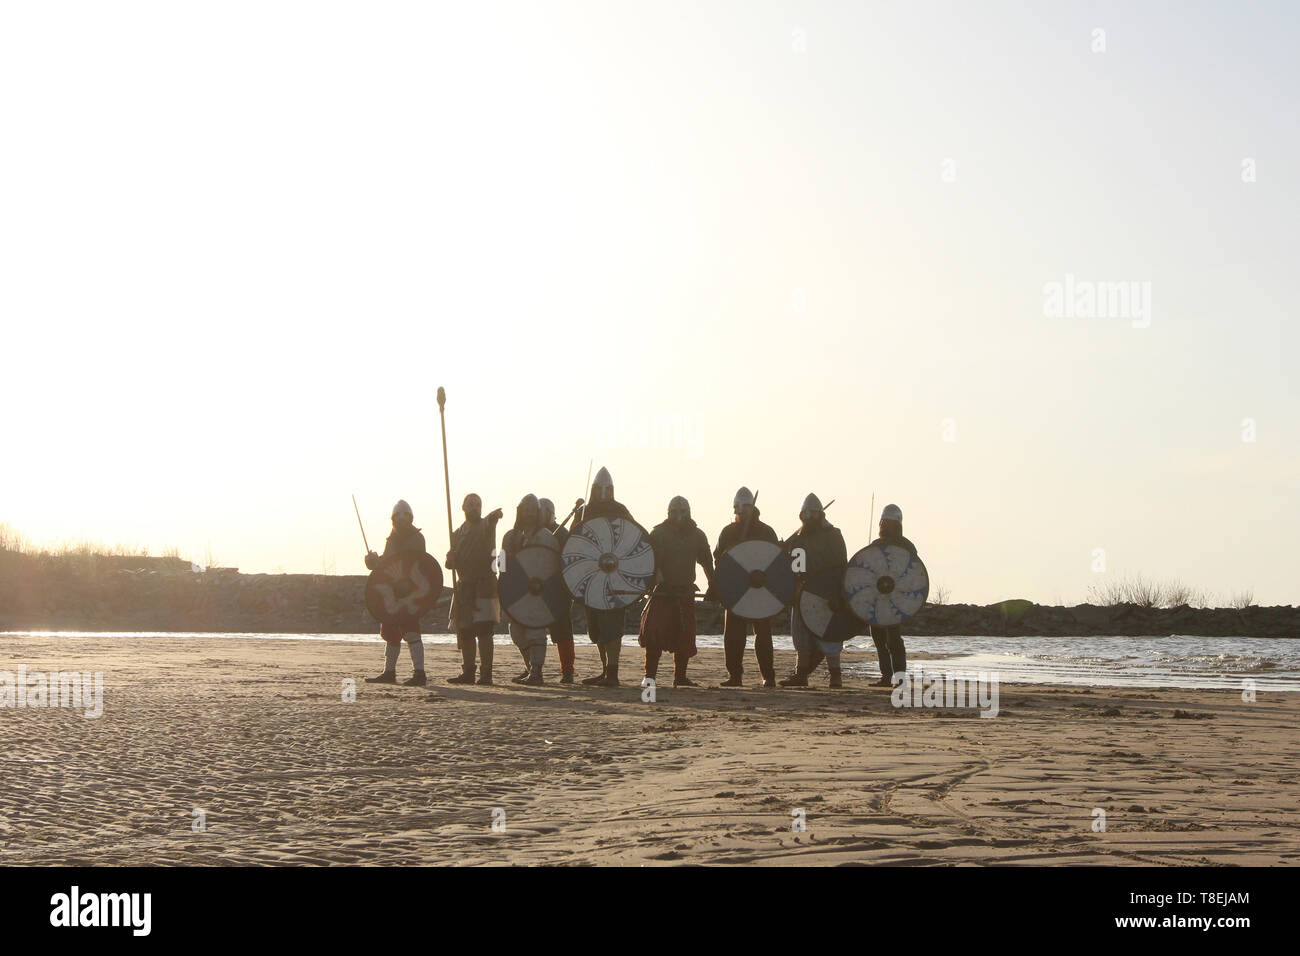 Slavic warriors reenactors with wearpons and shields posing outdoors at seaside standing in a row - Stock Image